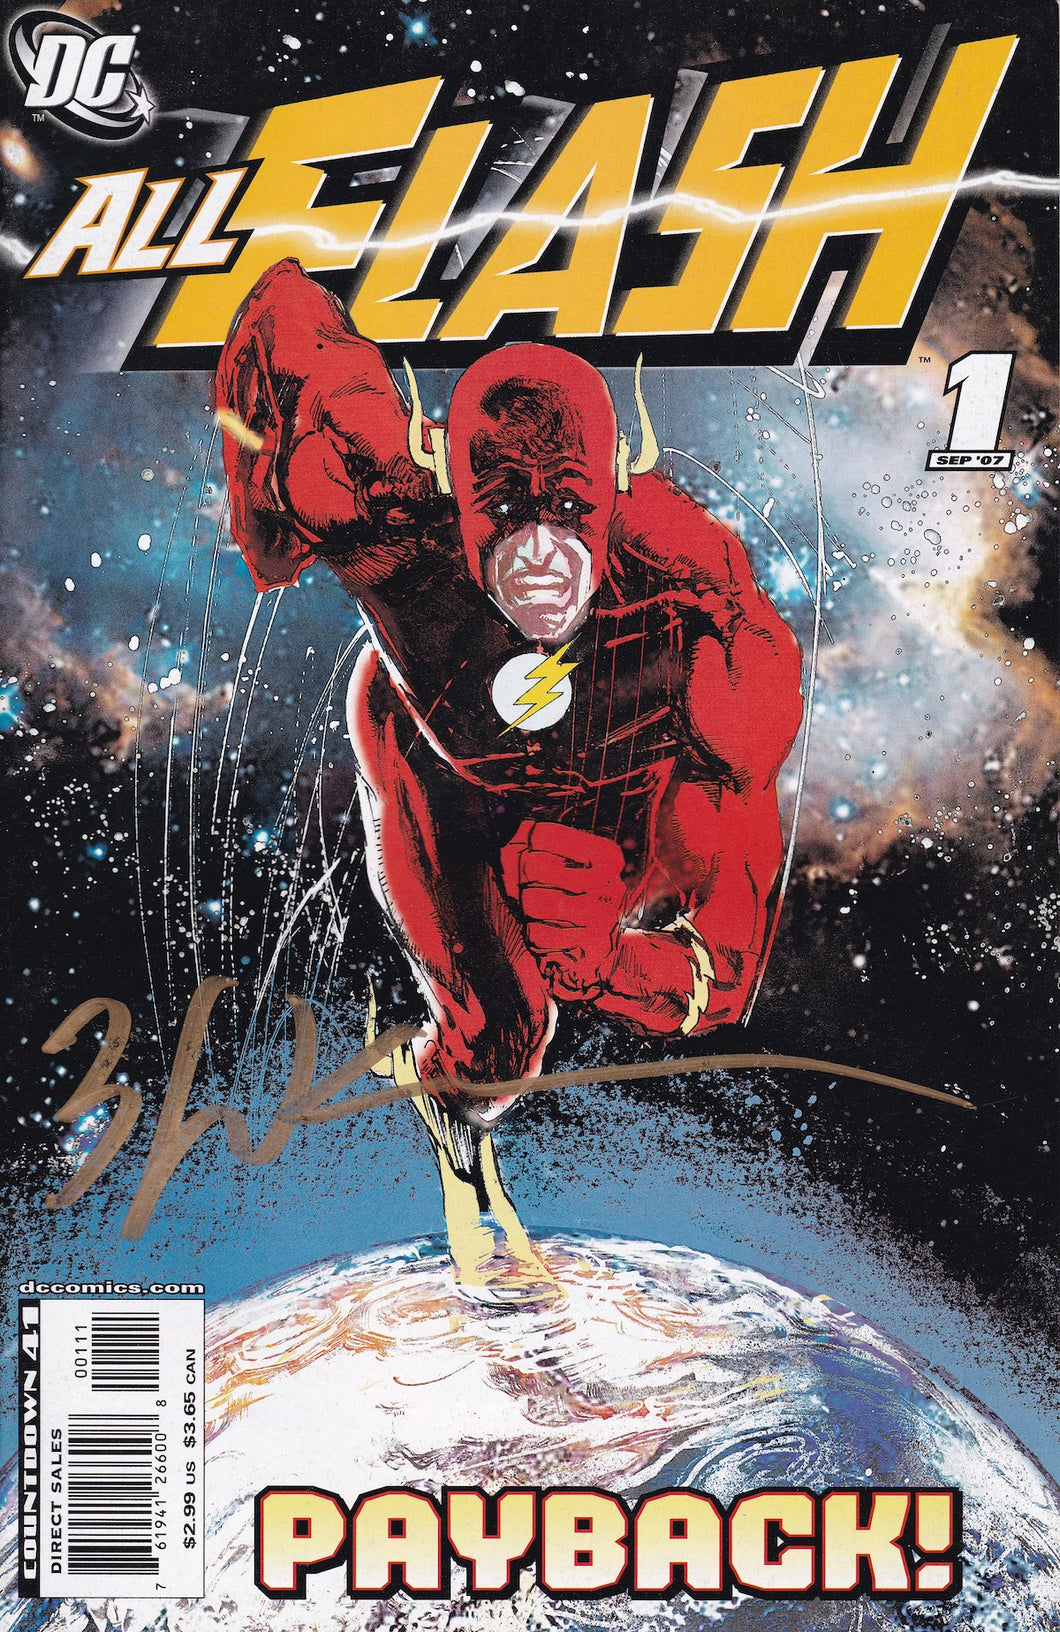 All Flash #1 Signed